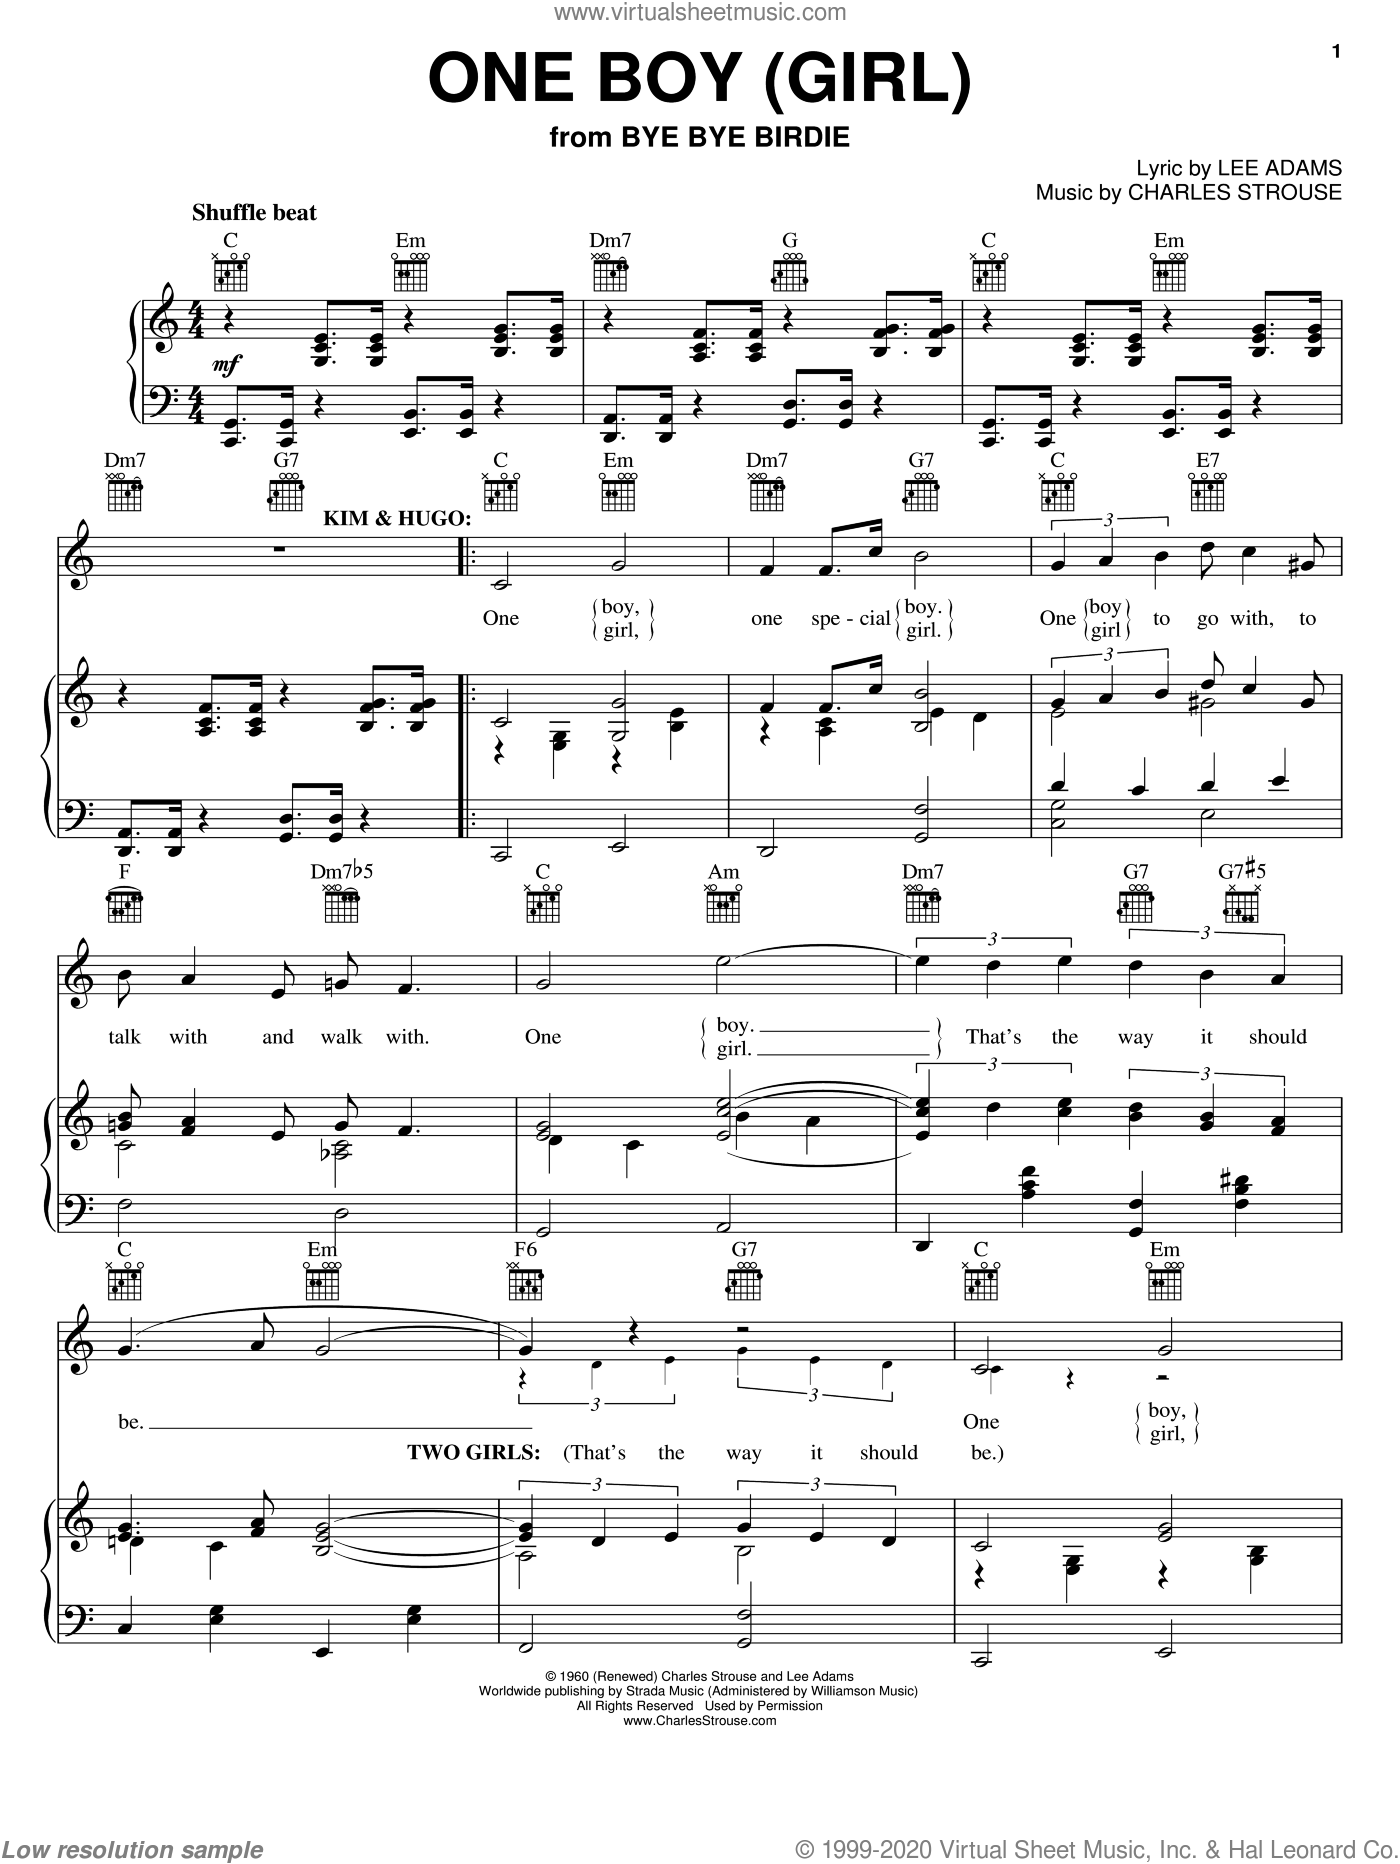 One Boy (Girl) sheet music for voice, piano or guitar by Charles Strouse and Lee Adams, intermediate voice, piano or guitar. Score Image Preview.